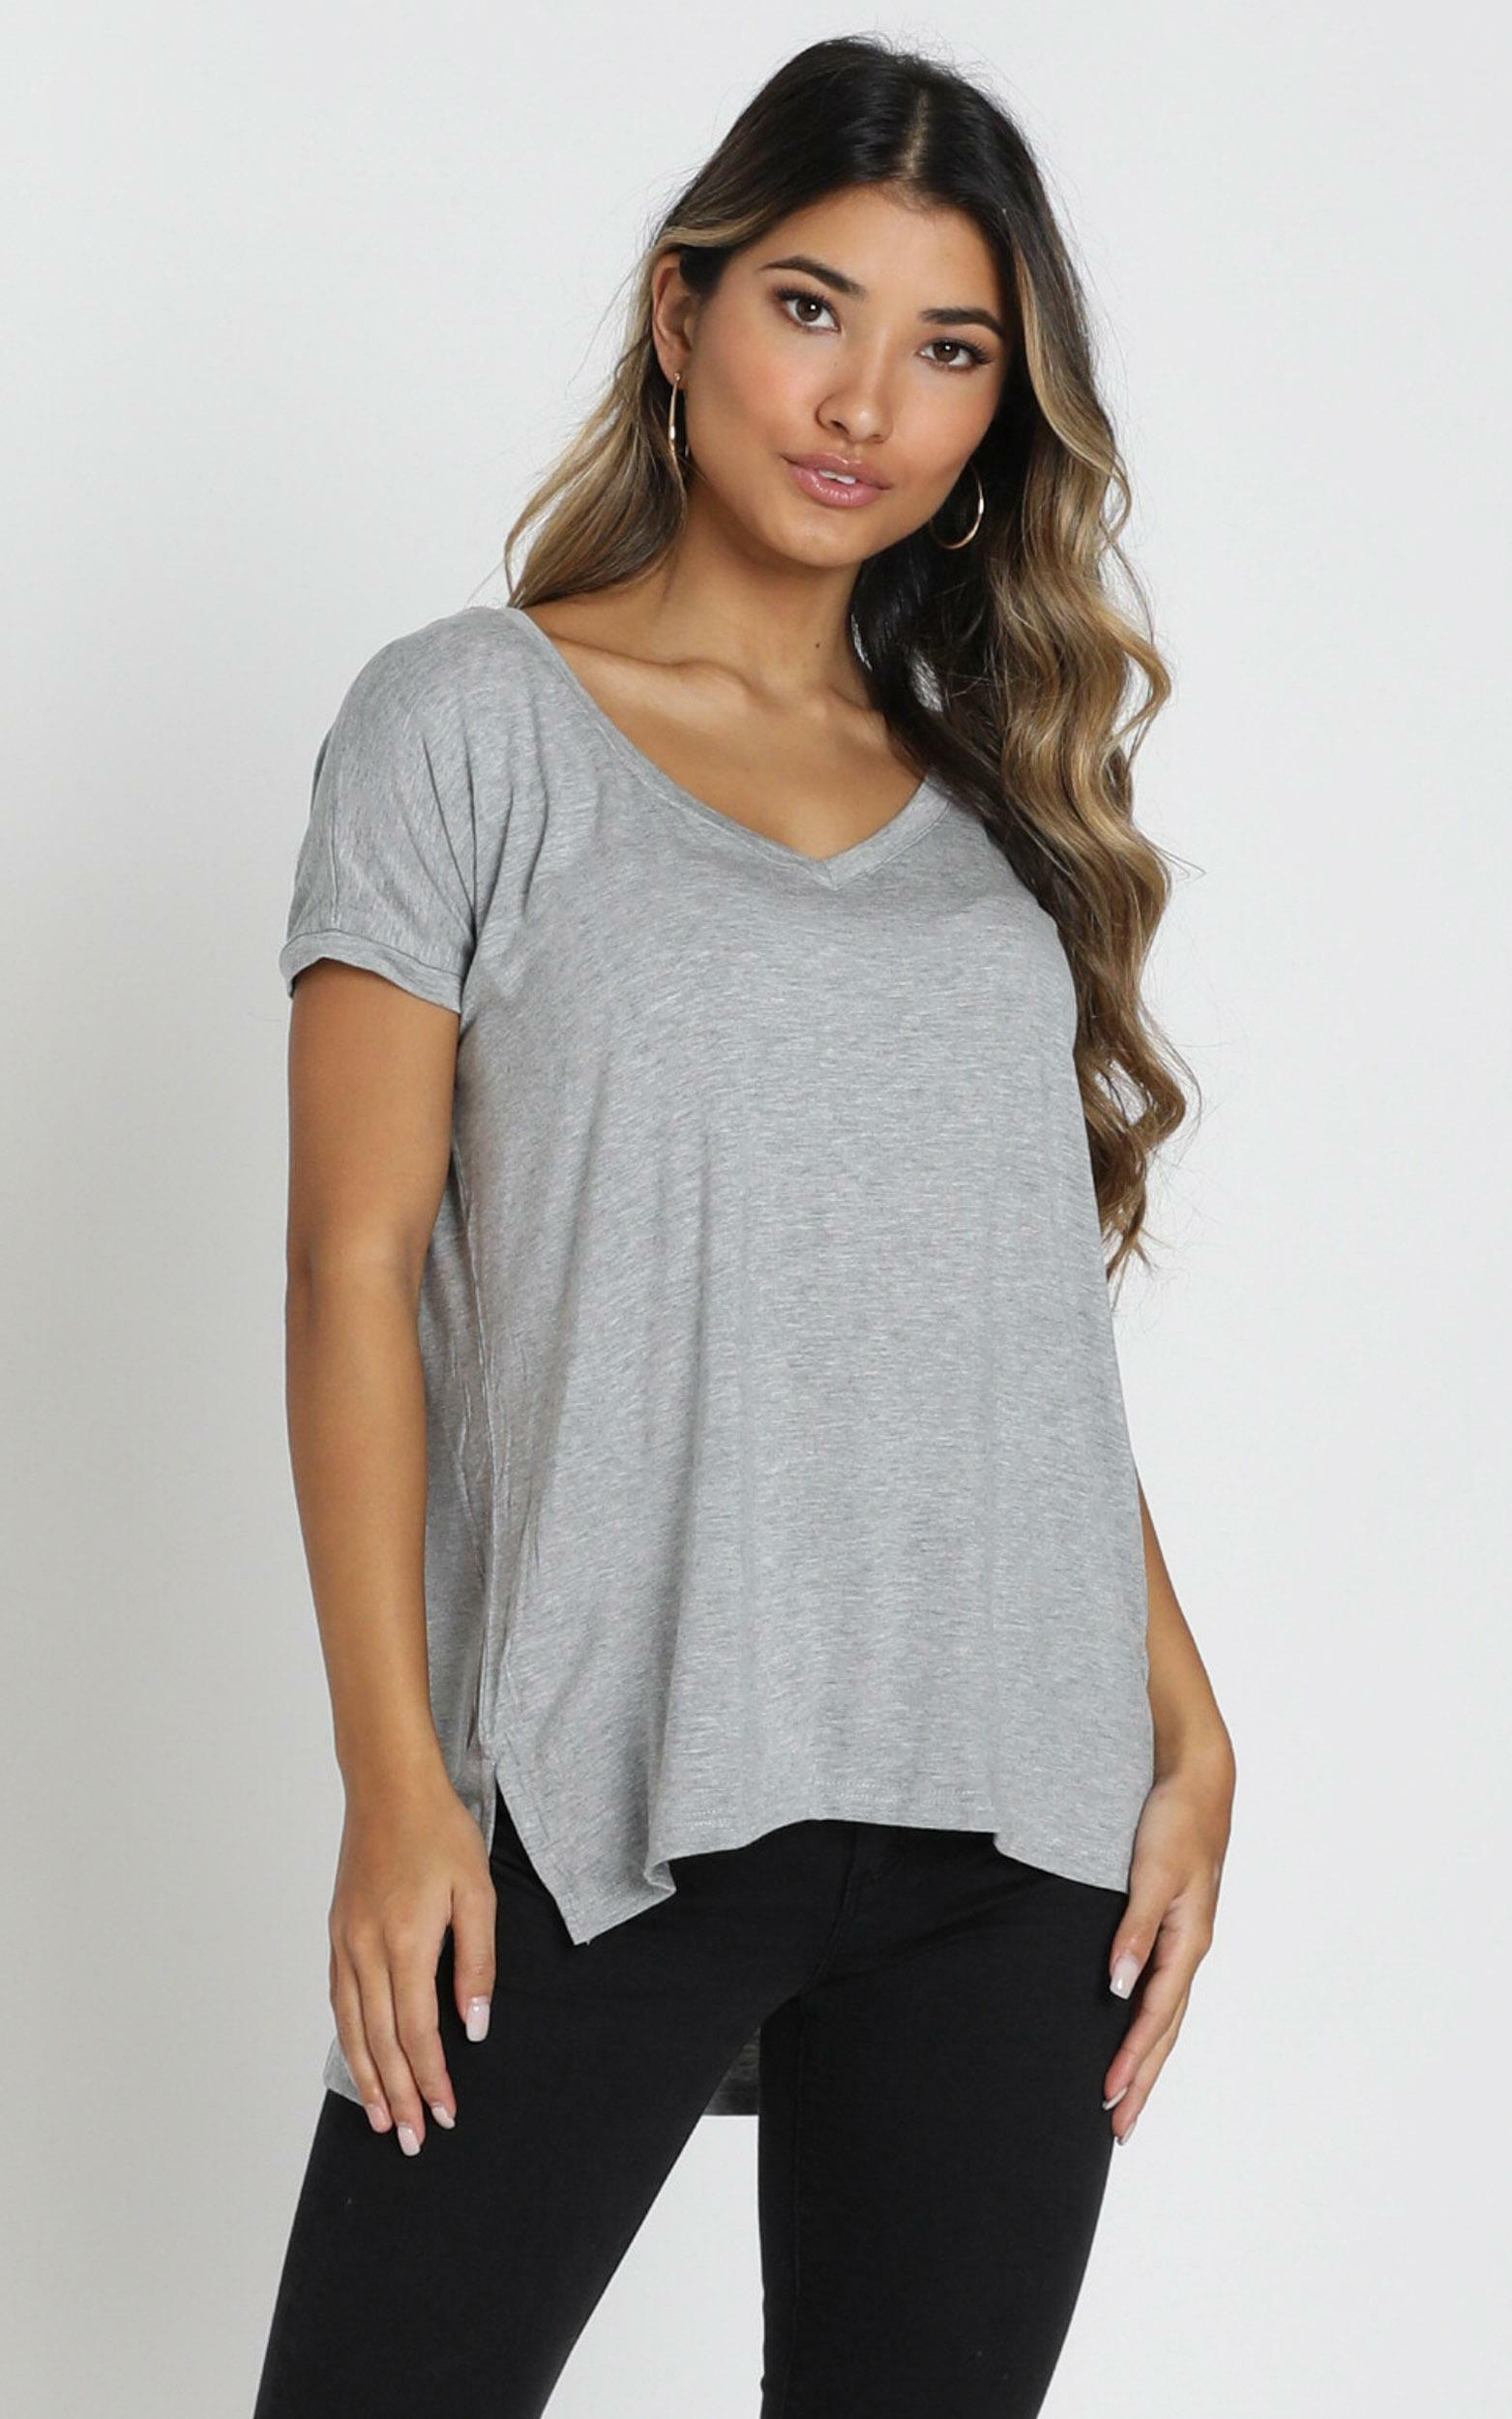 Back To Basics top in grey - 20 (XXXXL), Grey, hi-res image number null